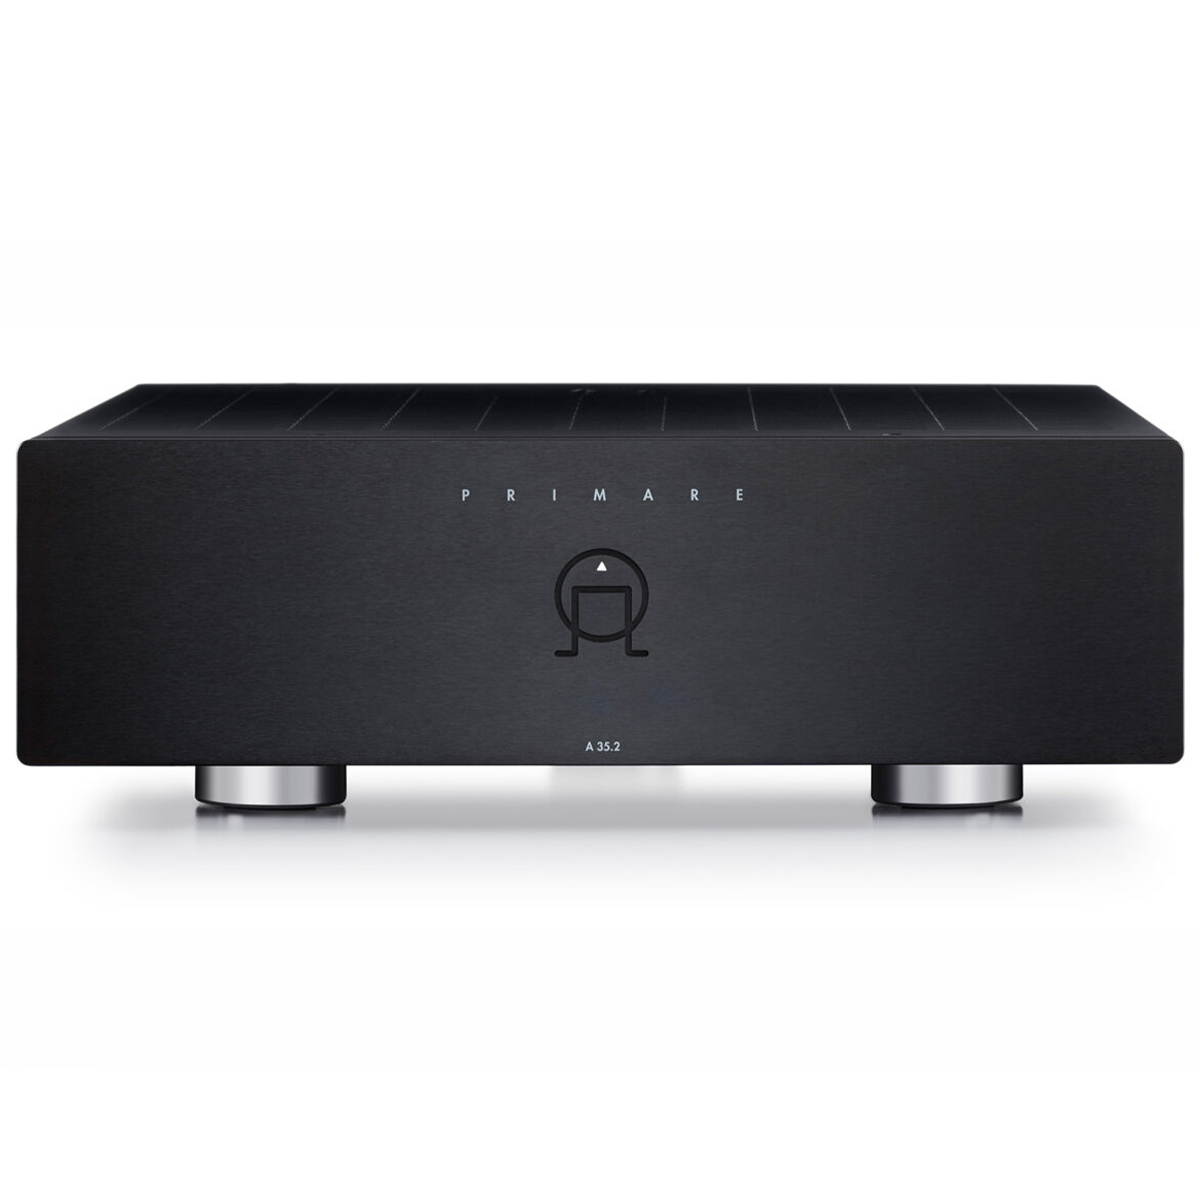 Primare A35.2 Front Blk Life Style Store